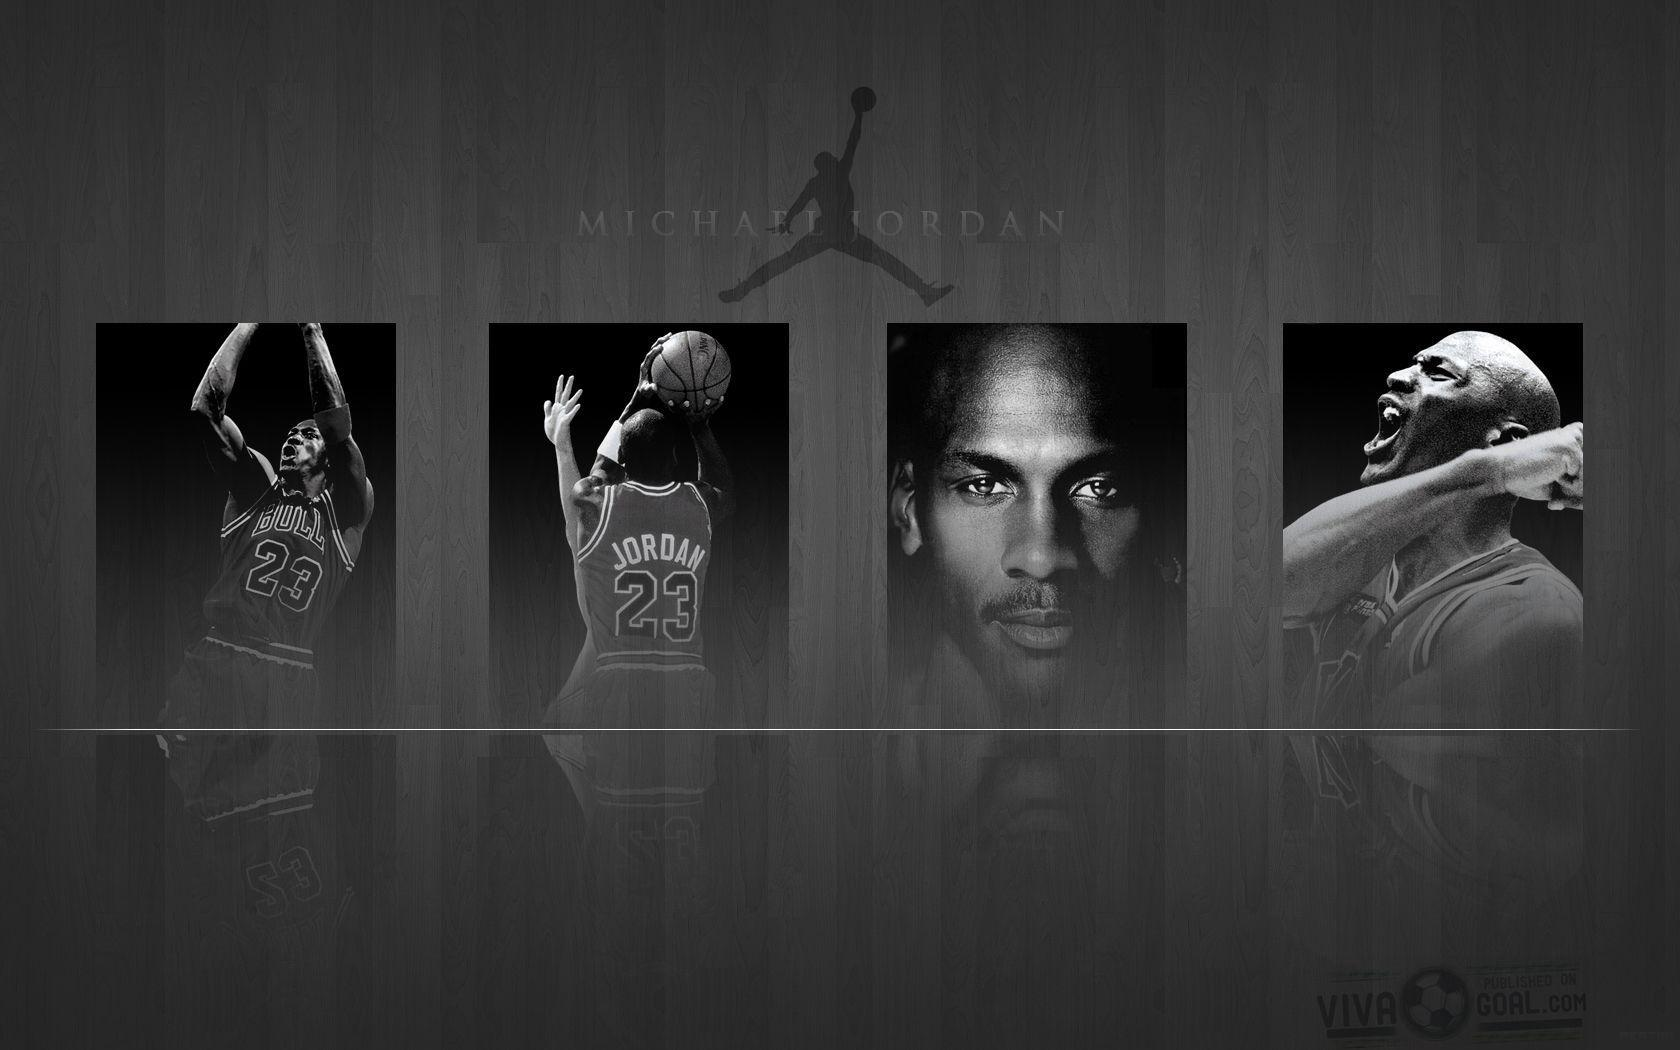 Michael Jordan Wallpaper 1080p: Michael Jordan HD Wallpapers